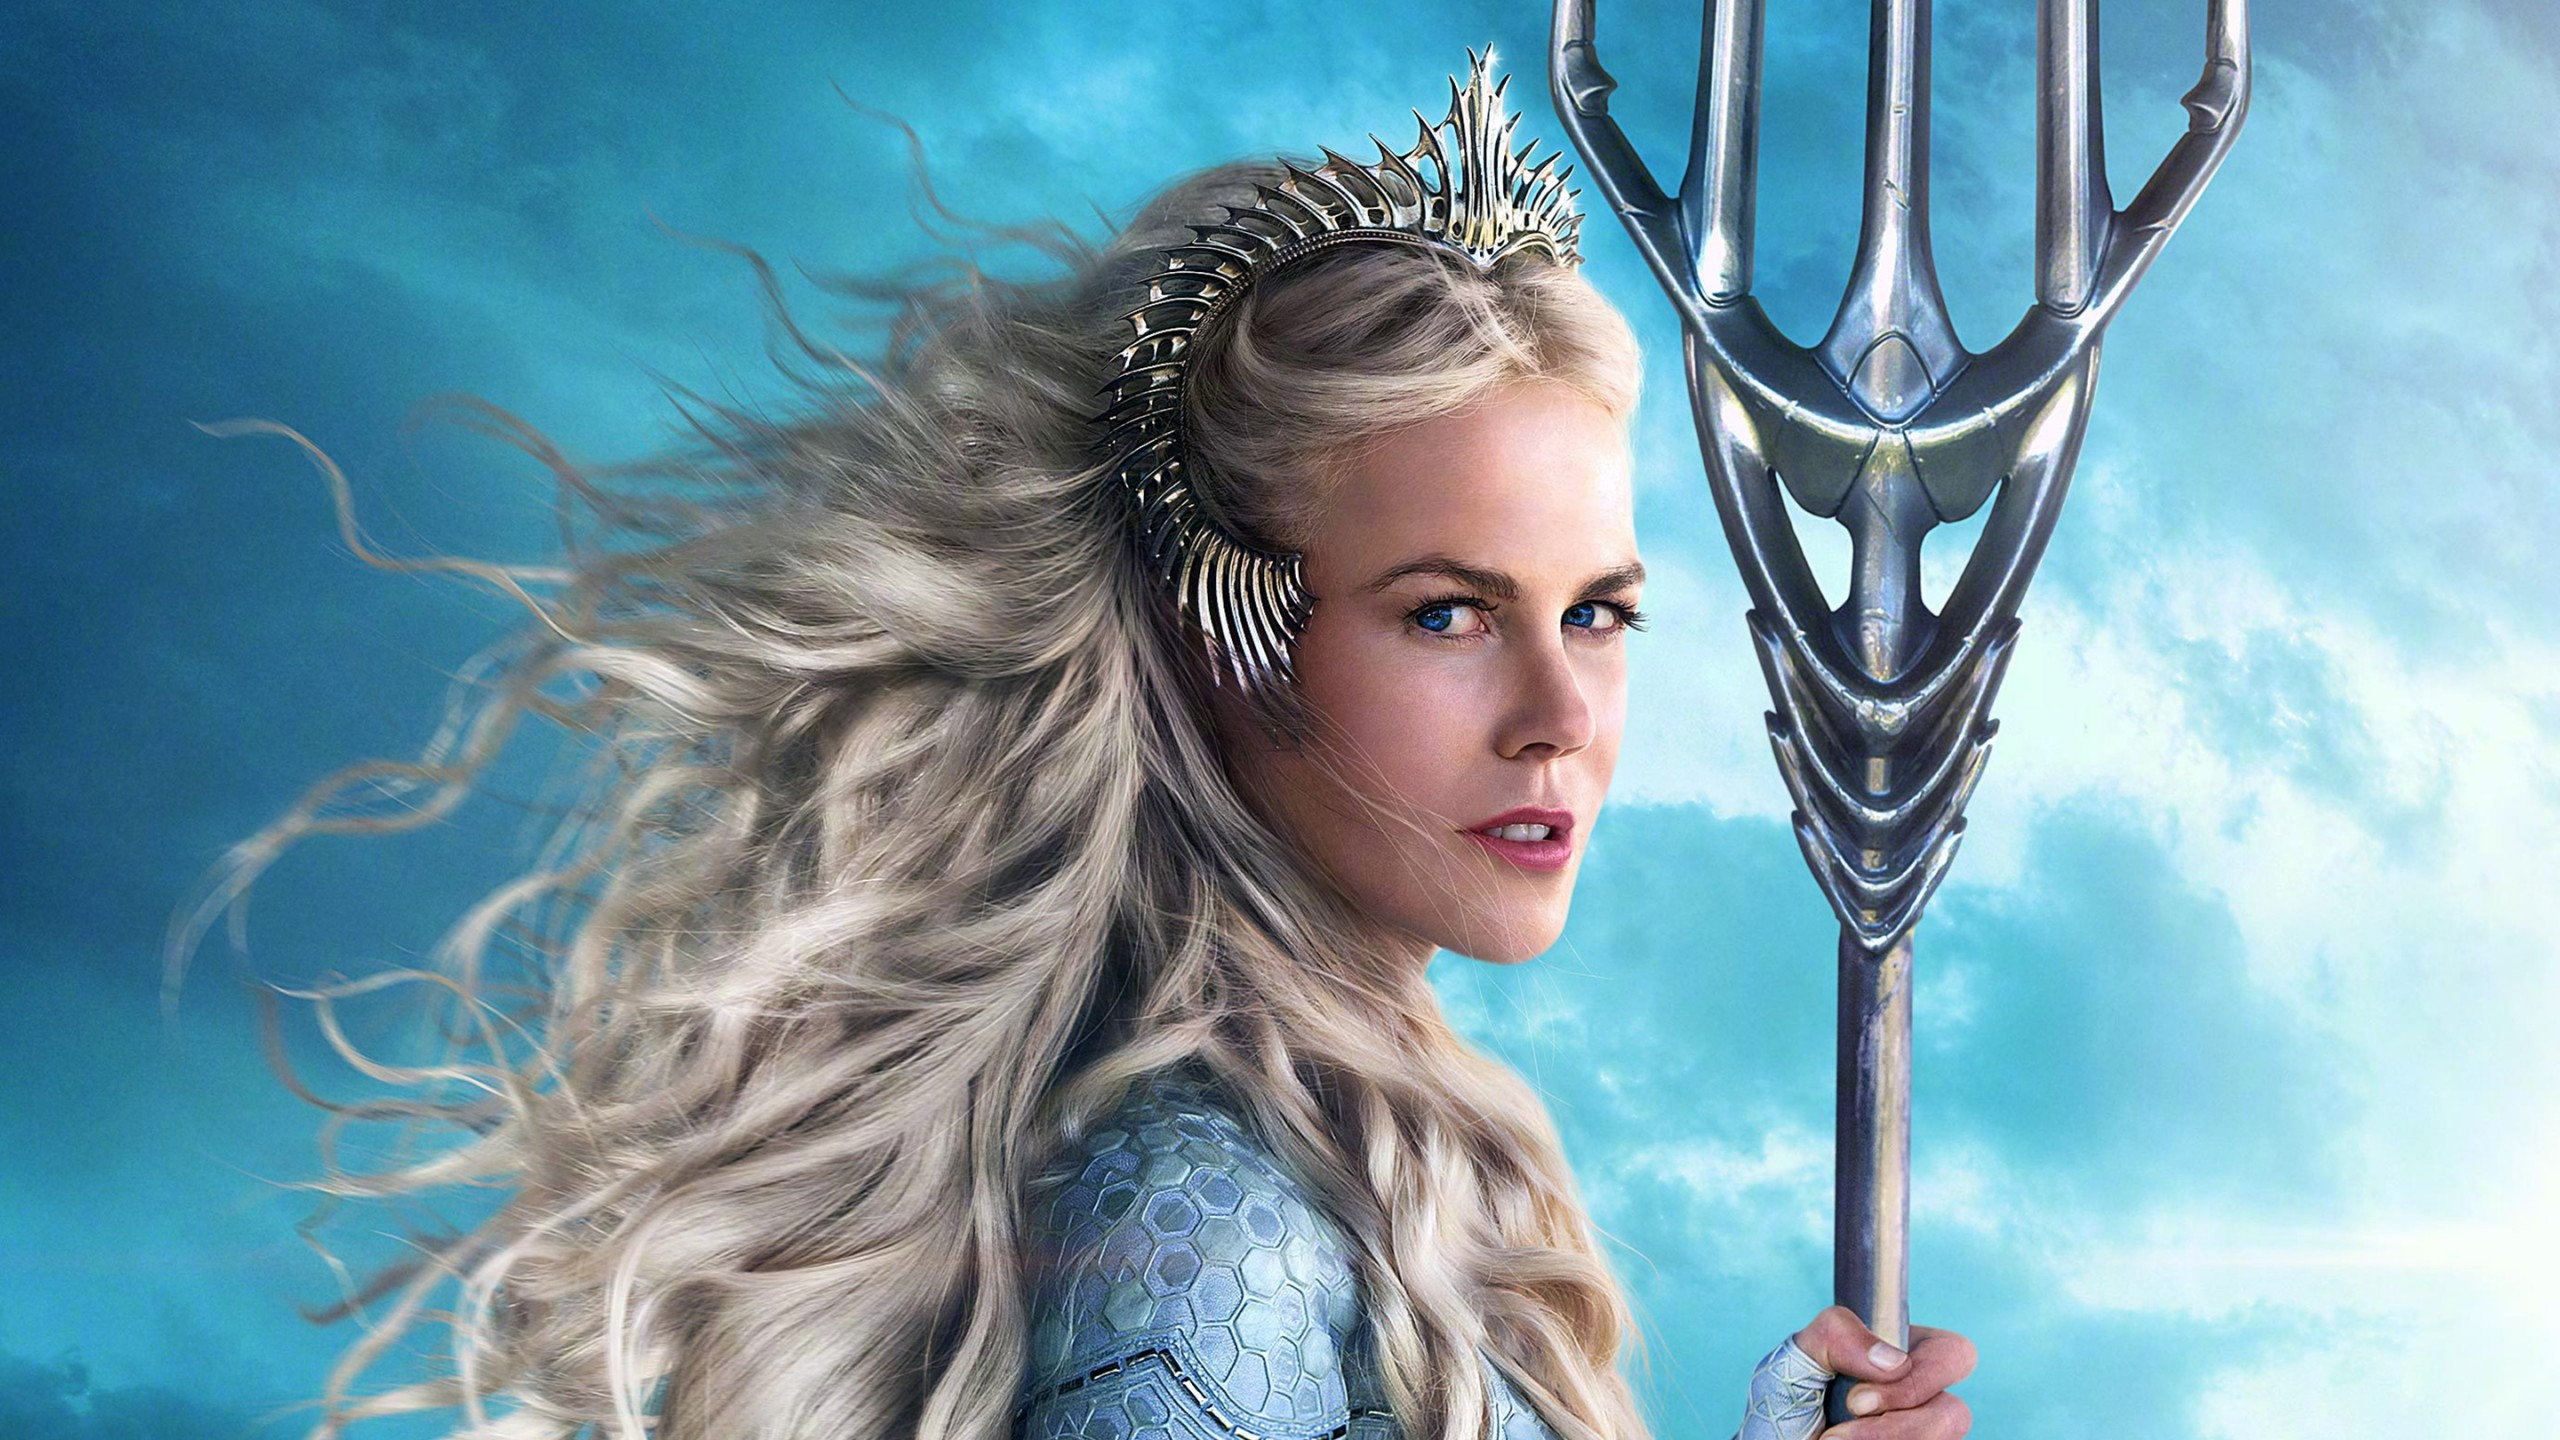 Cute Hd Wallpaper For Iphone 6 Nicole Kidman As Queen Atlanna In Aquaman Wallpapers Hd